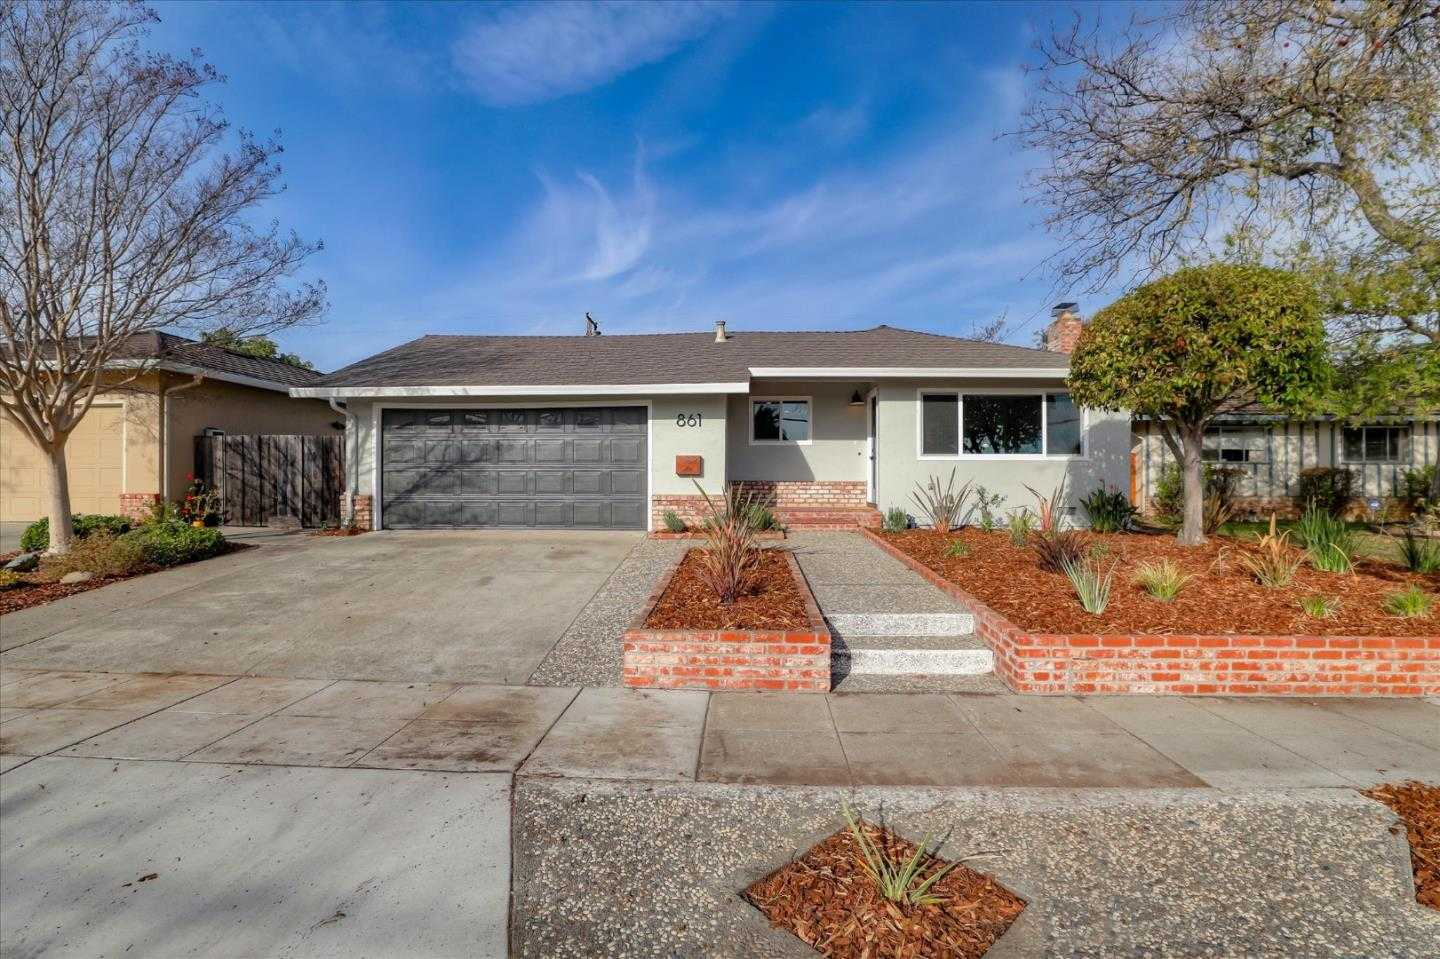 $1,899,000 - 4Br/2Ba -  for Sale in Sunnyvale